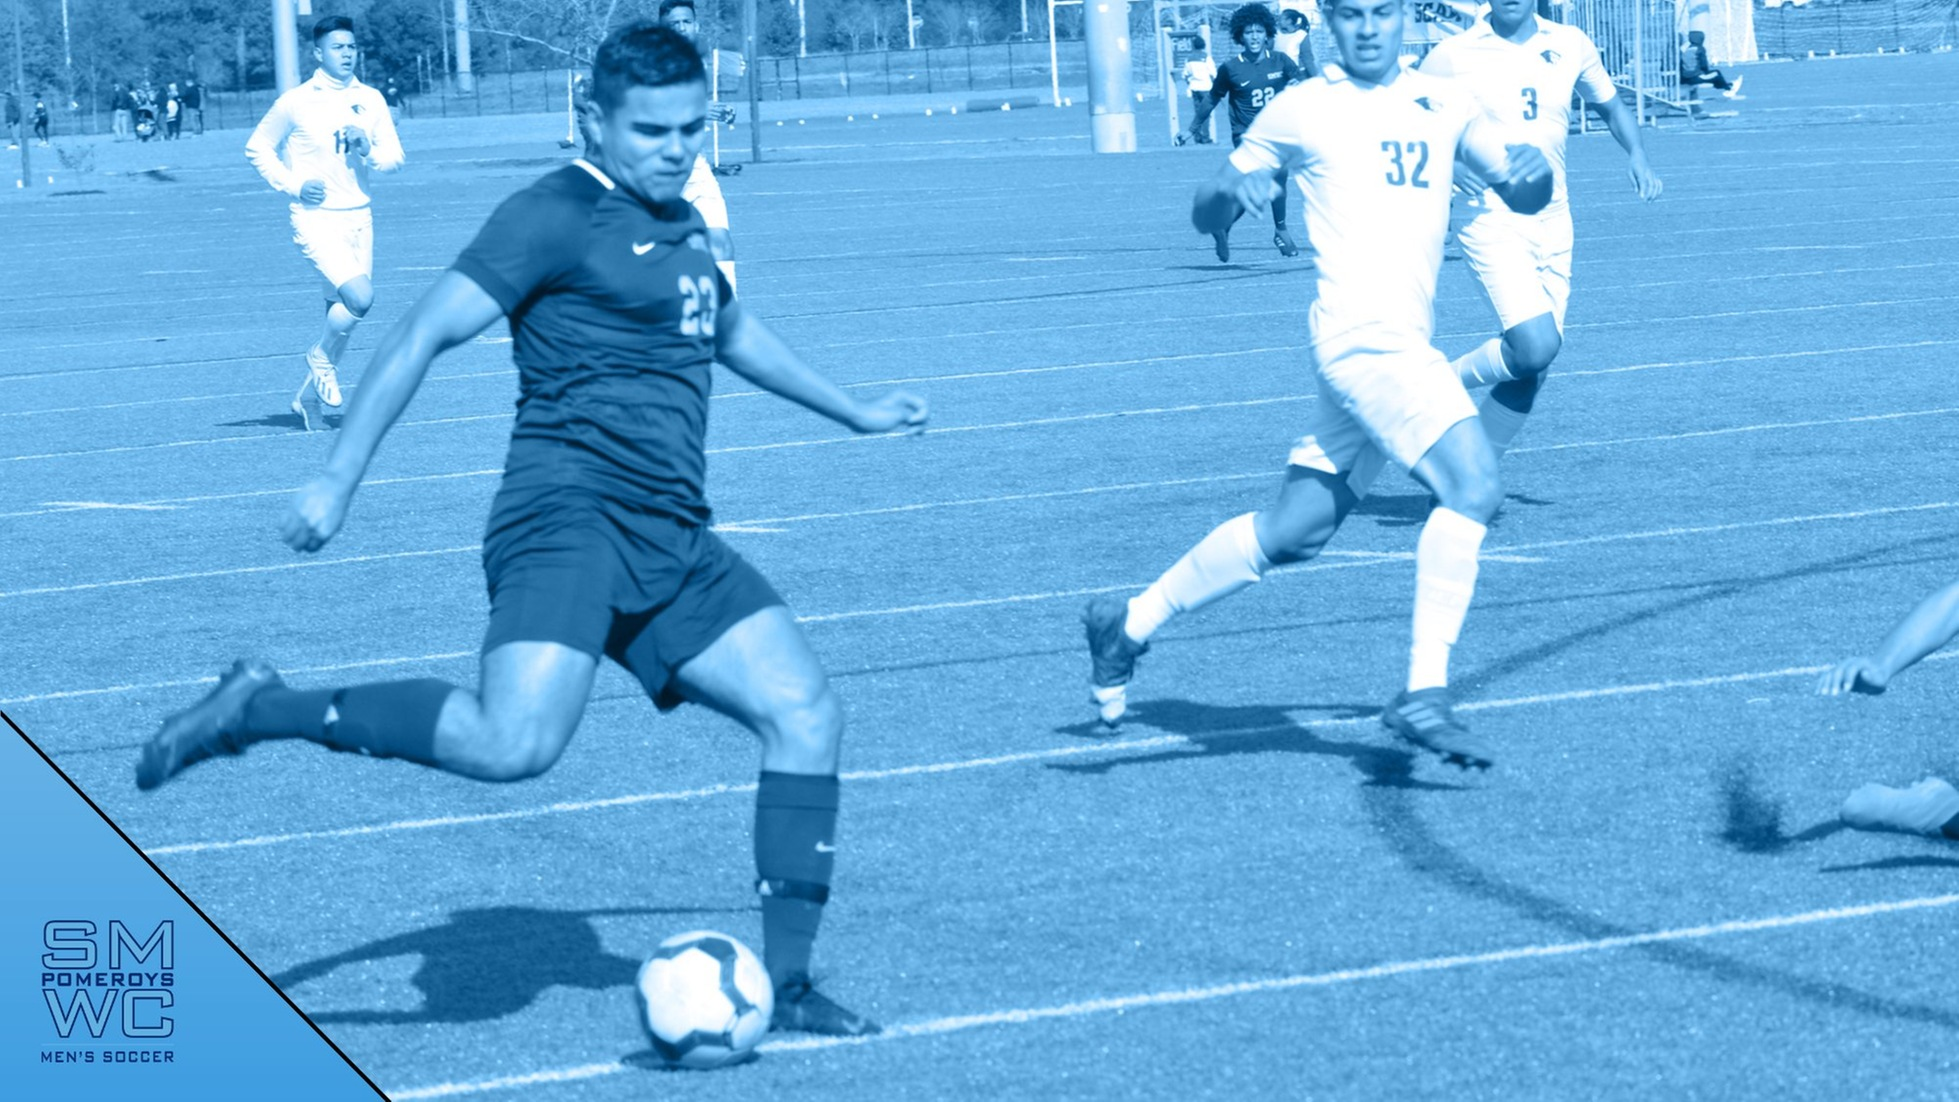 Men's Soccer Moves to 3-0 on the Season With 2-1 Win Over CCU